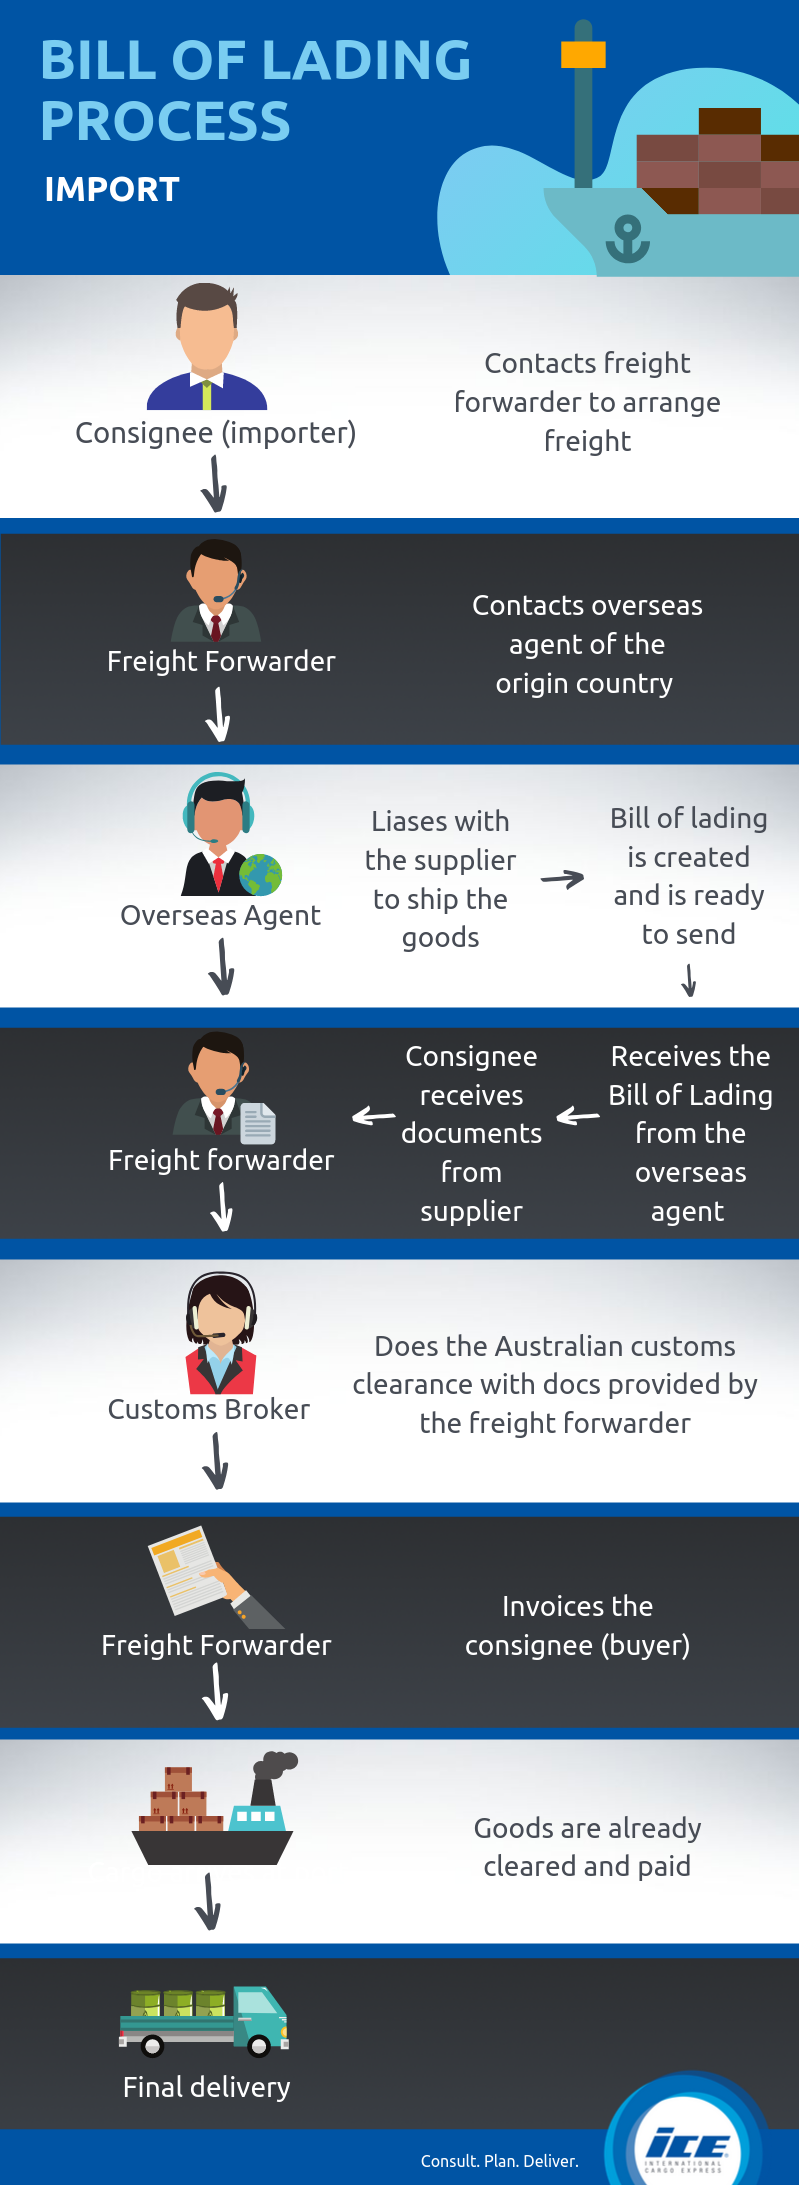 Bill of lading process for import chart(2)